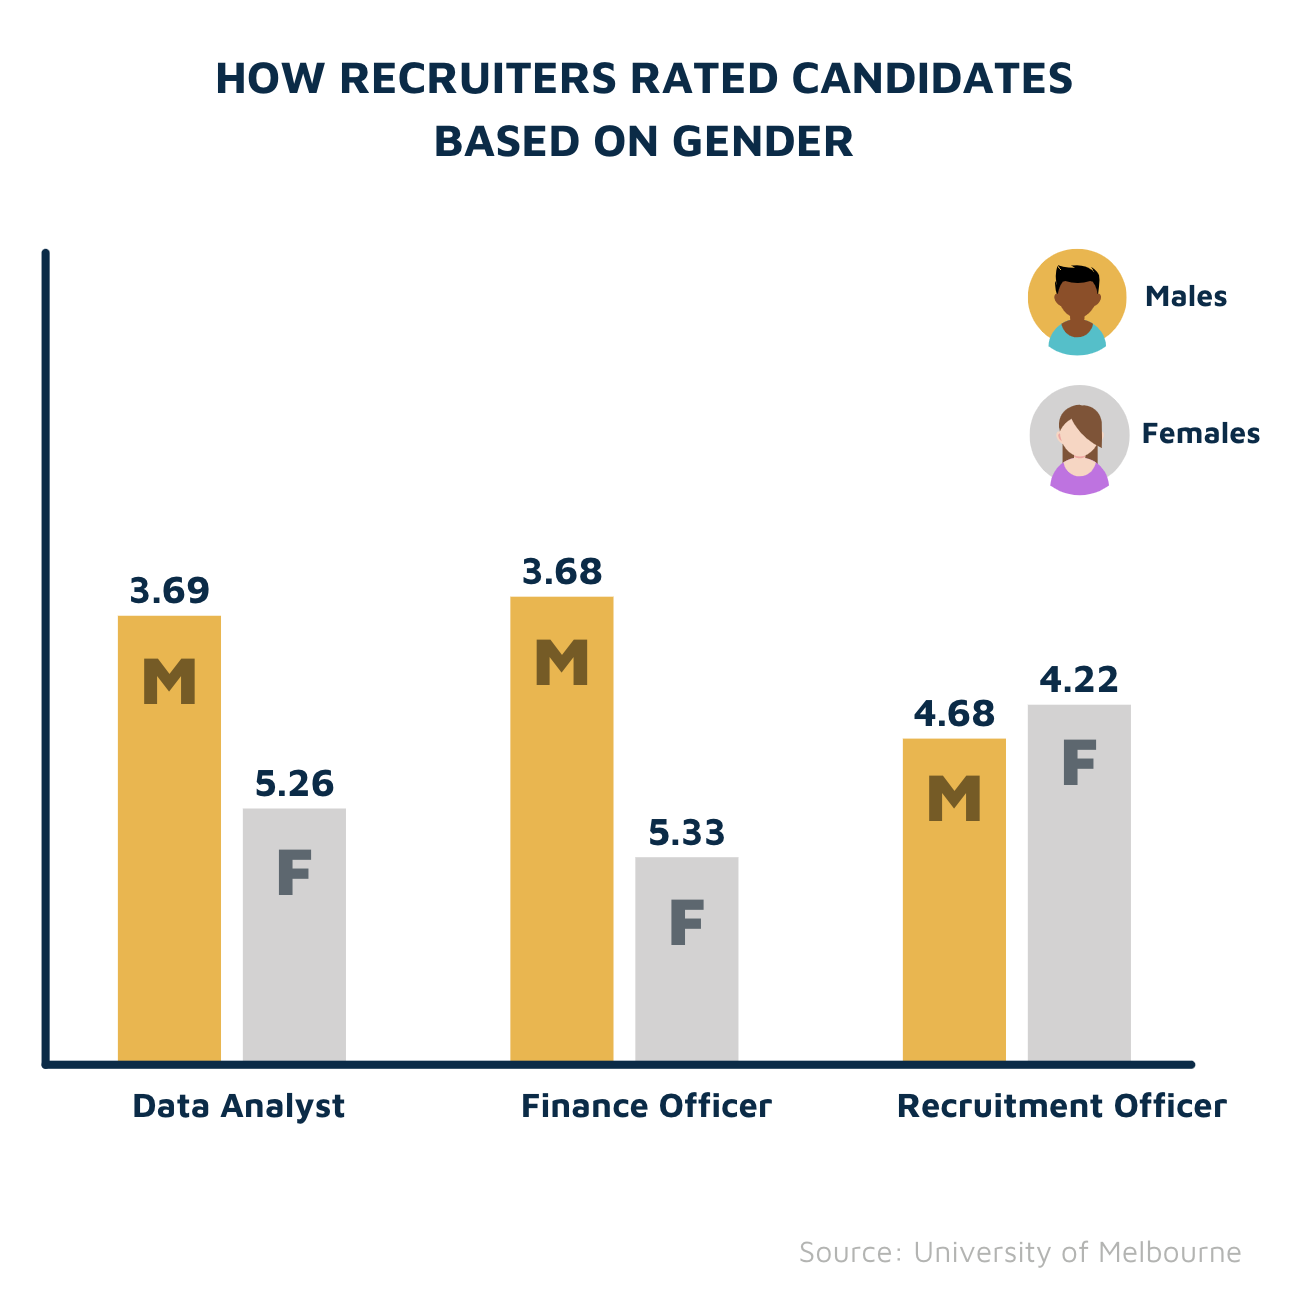 How recruiters rates candidates bases on gender and role